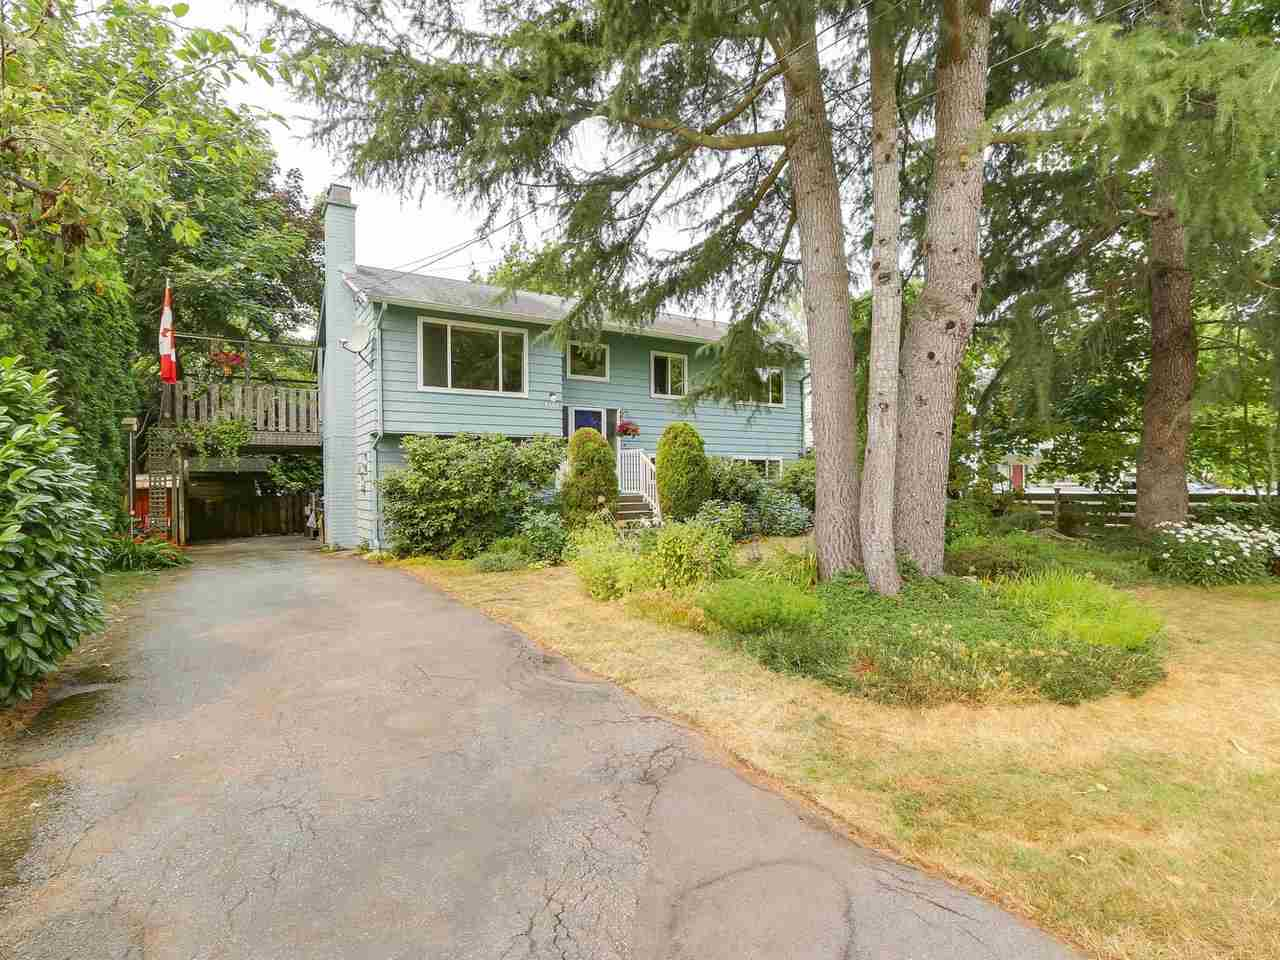 Main Photo: 4283 48B Street in Delta: Ladner Elementary House for sale (Ladner)  : MLS® # R2194676